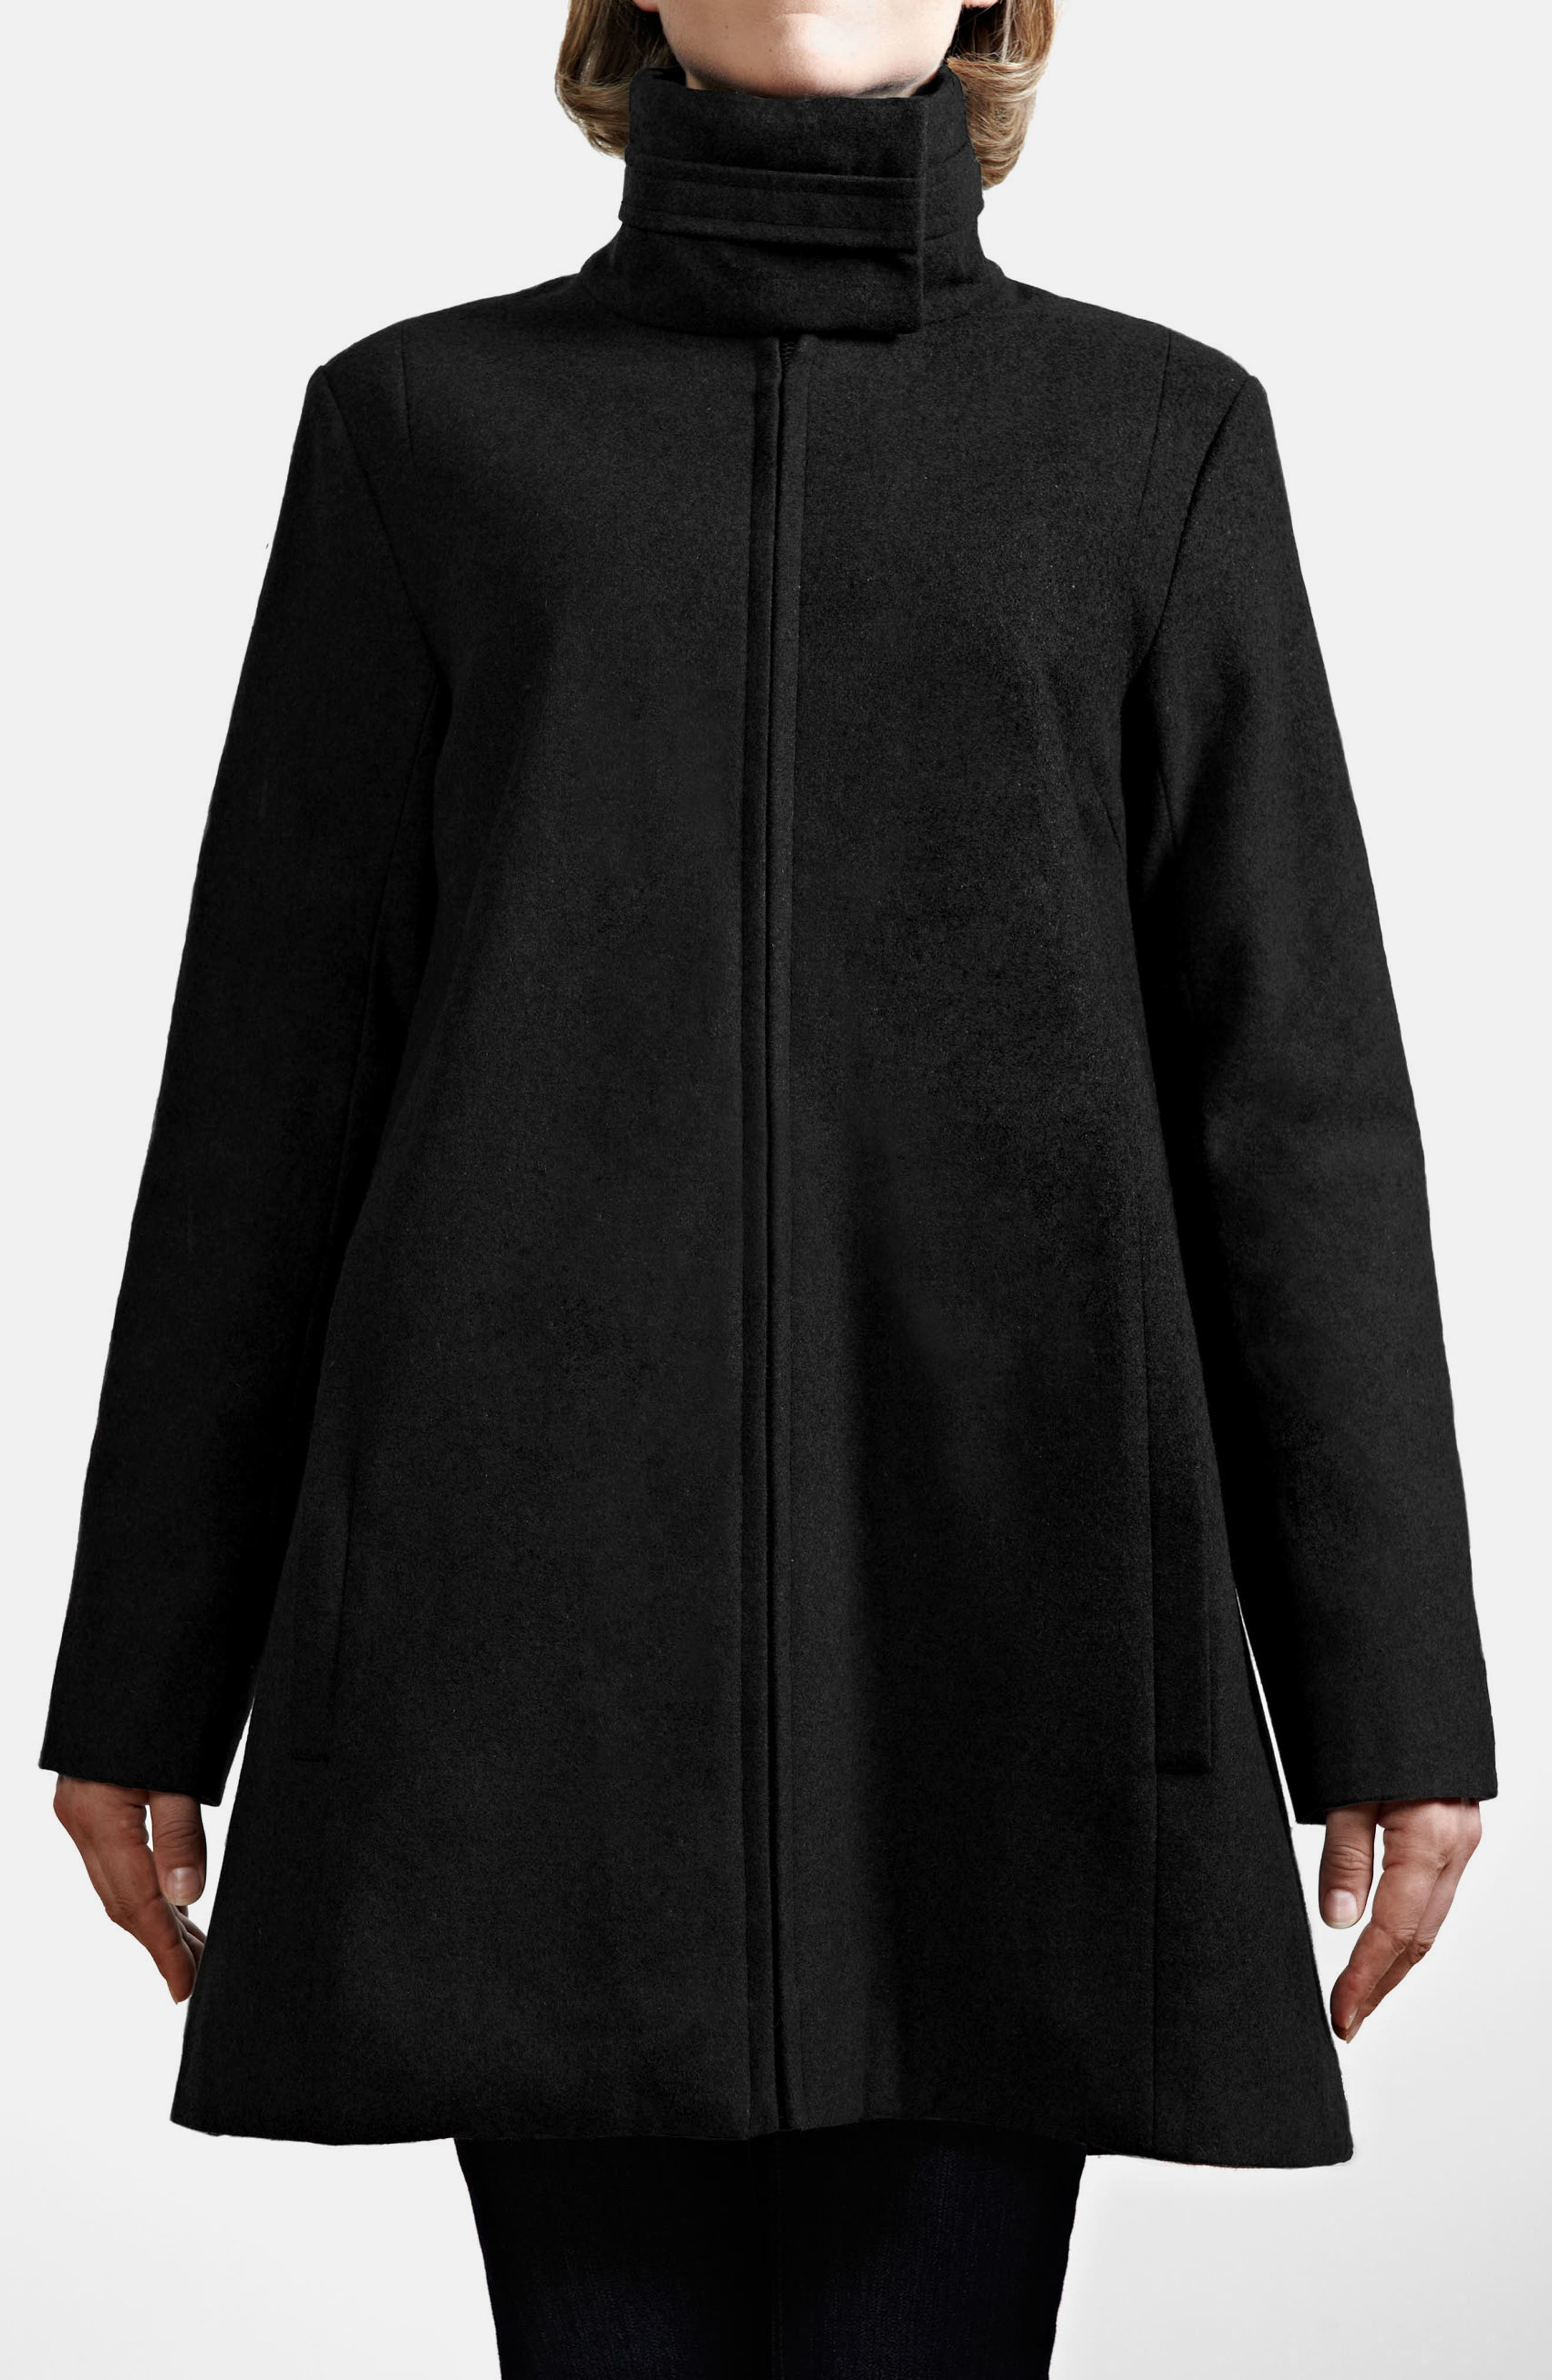 A-Line Convertible 3-in-1 Maternity Swing Coat,                             Alternate thumbnail 2, color,                             BLACK